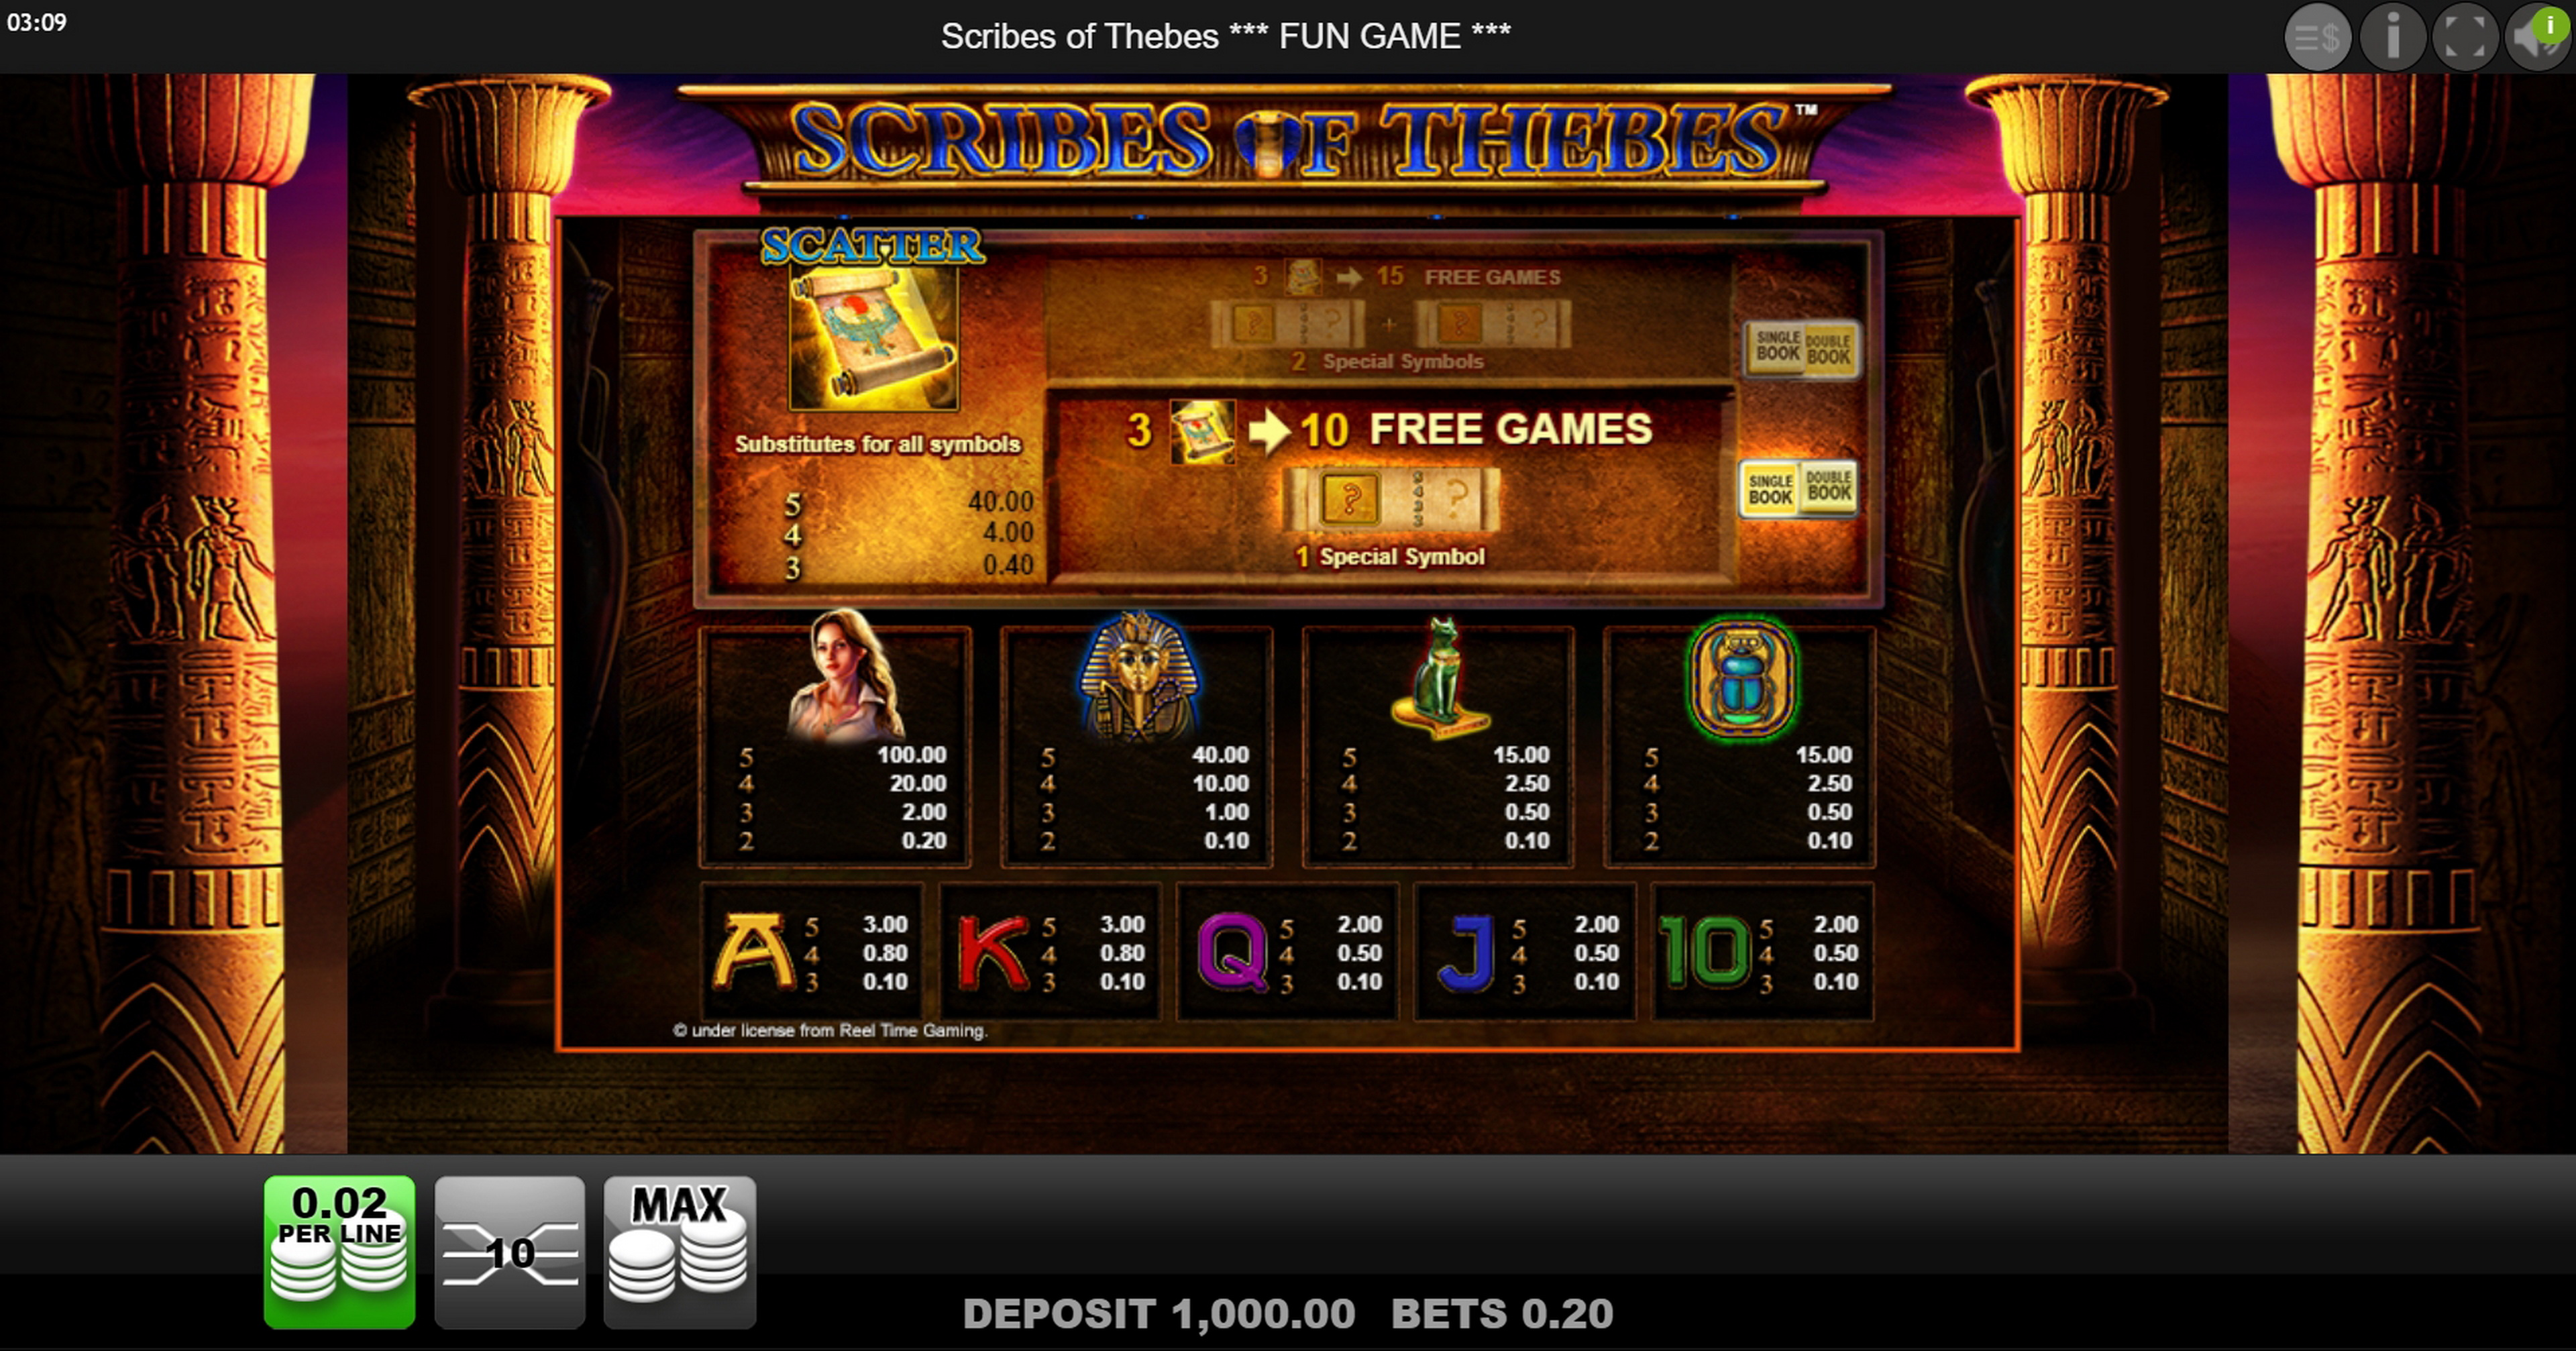 Info of Scribes of Thebes Slot Game by edict